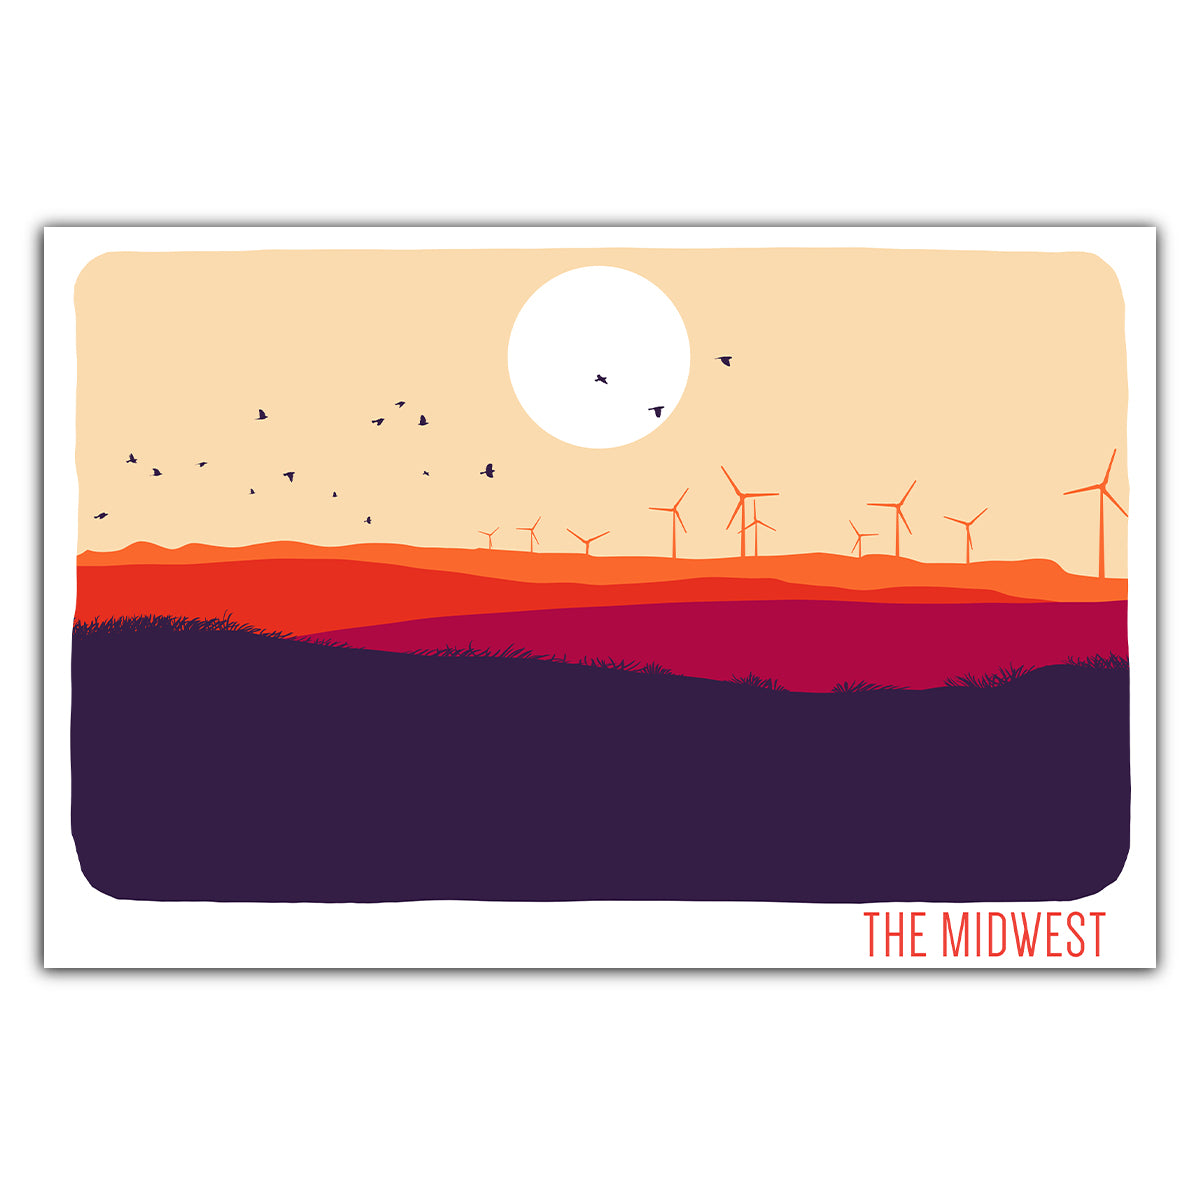 The Midwest Postcard